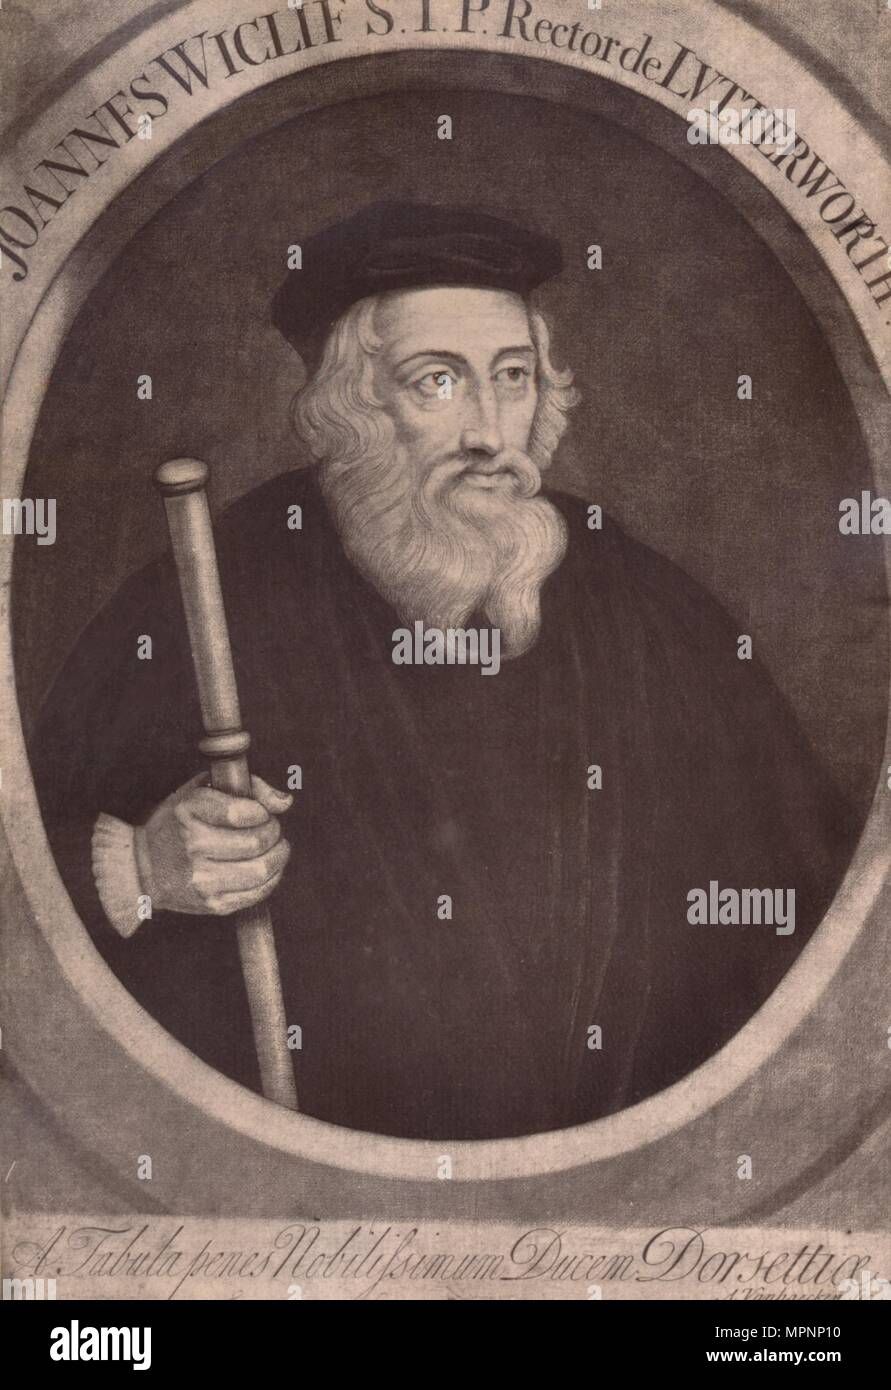 John Wycliffe, English theologian and religious reformer, 18th century (1894). Artist: Alexander van Haecken. - Stock Image